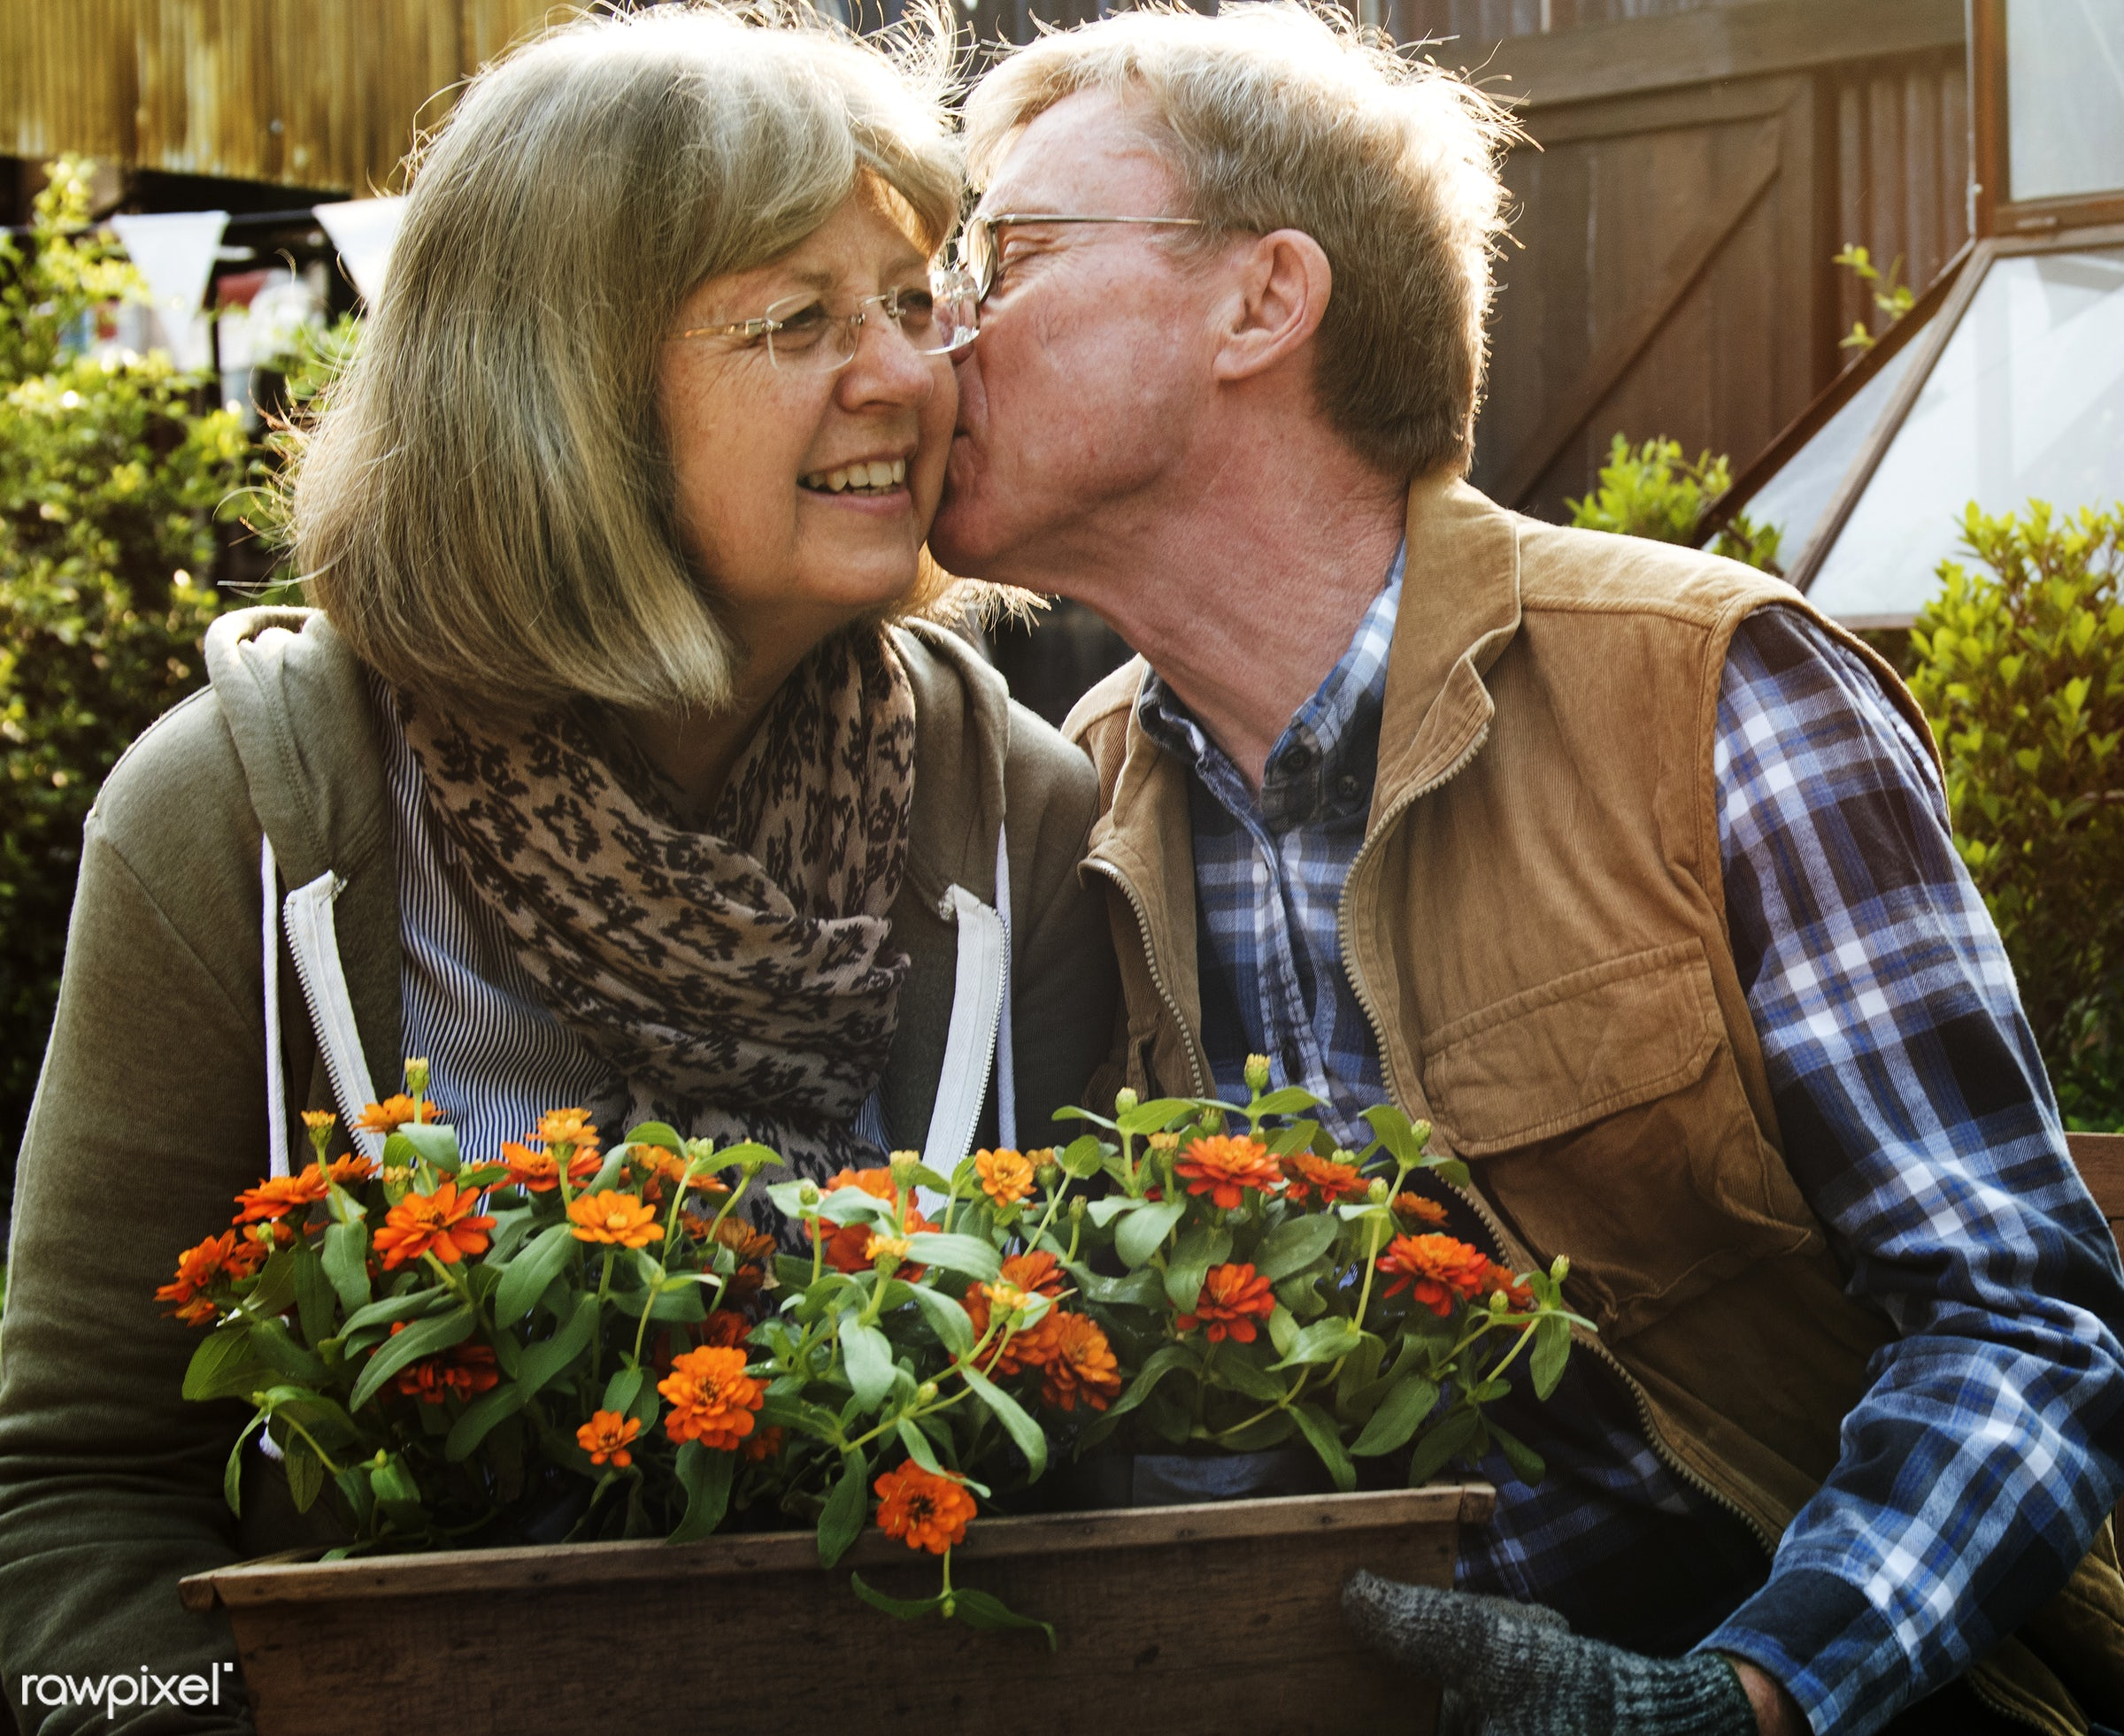 expression, person, holding, smitten, people, together, love, kiss, retirement, cherish, family, woman, lifestyle, intimate...